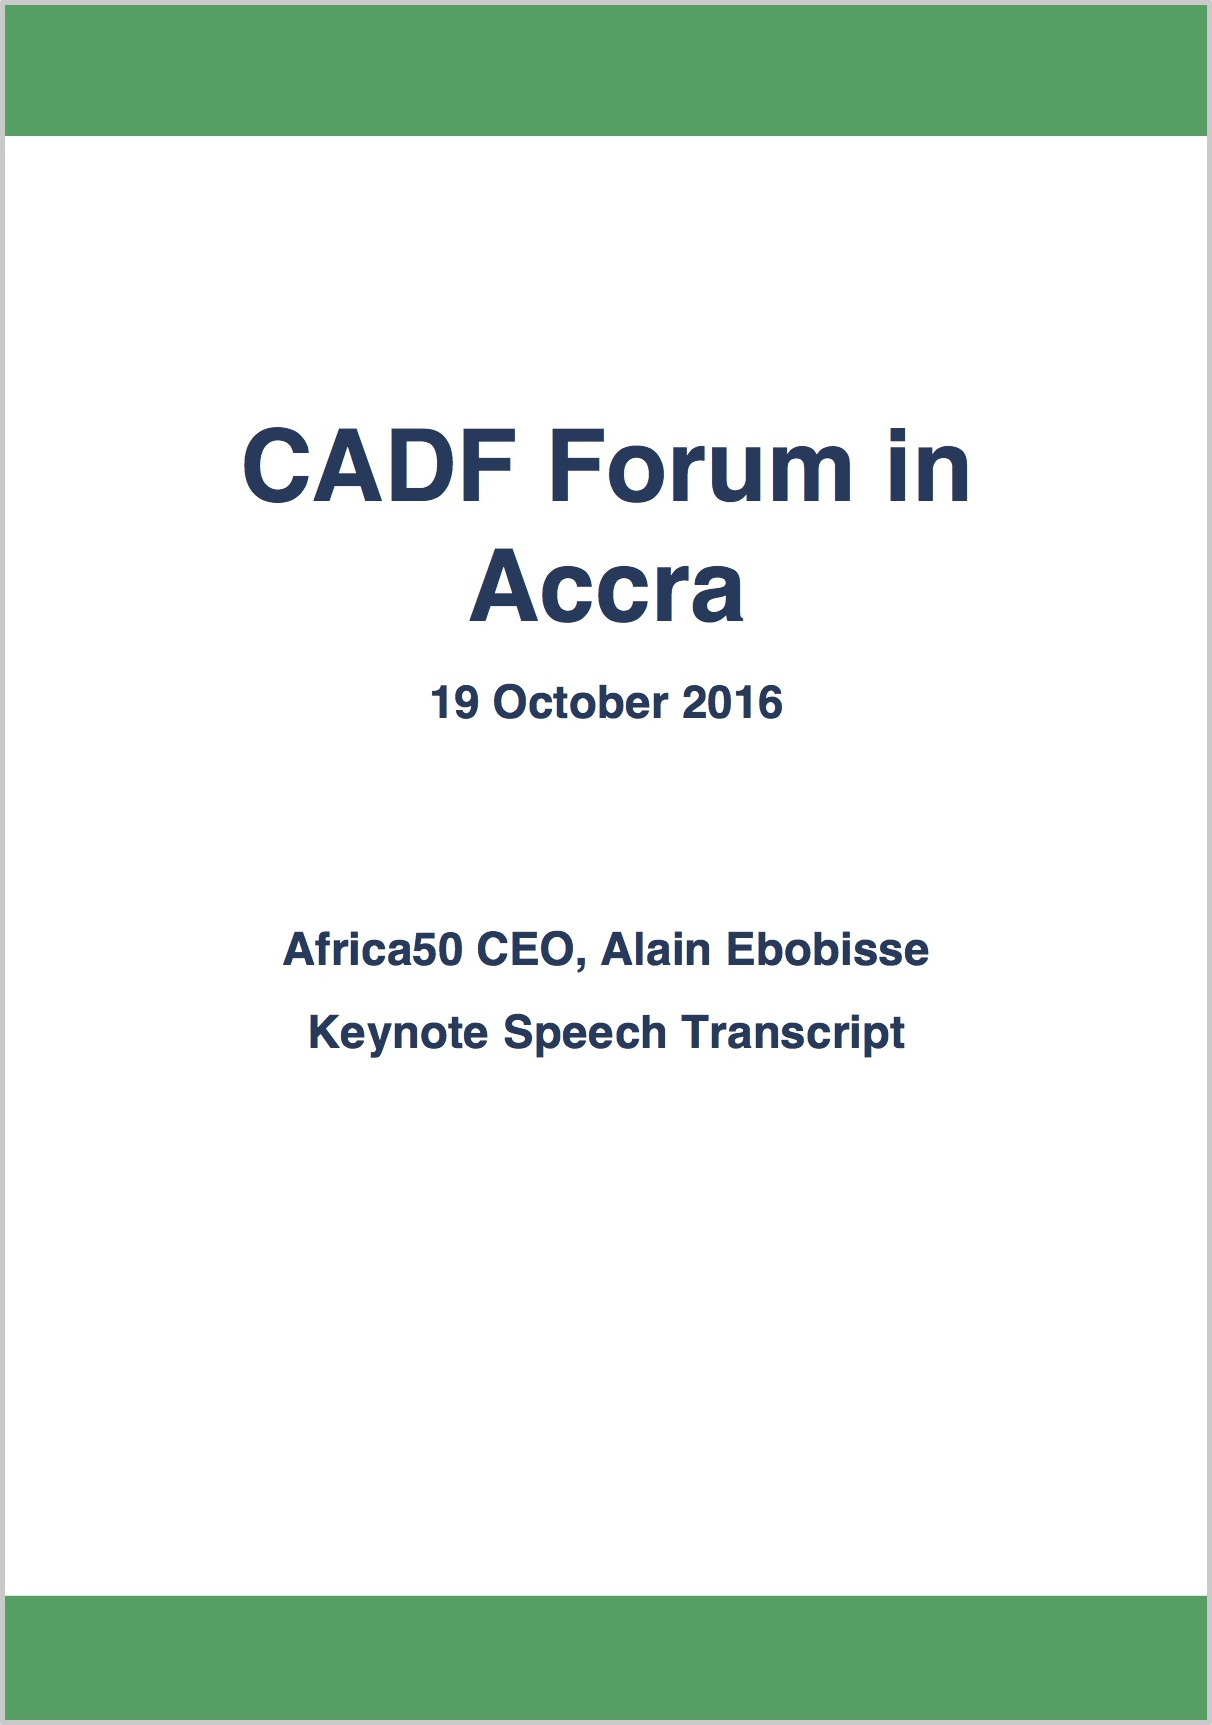 Opening remarks of Africa50 CEO Alain Ebobisse at CADF forum in Accra on Oct. 19, 2016